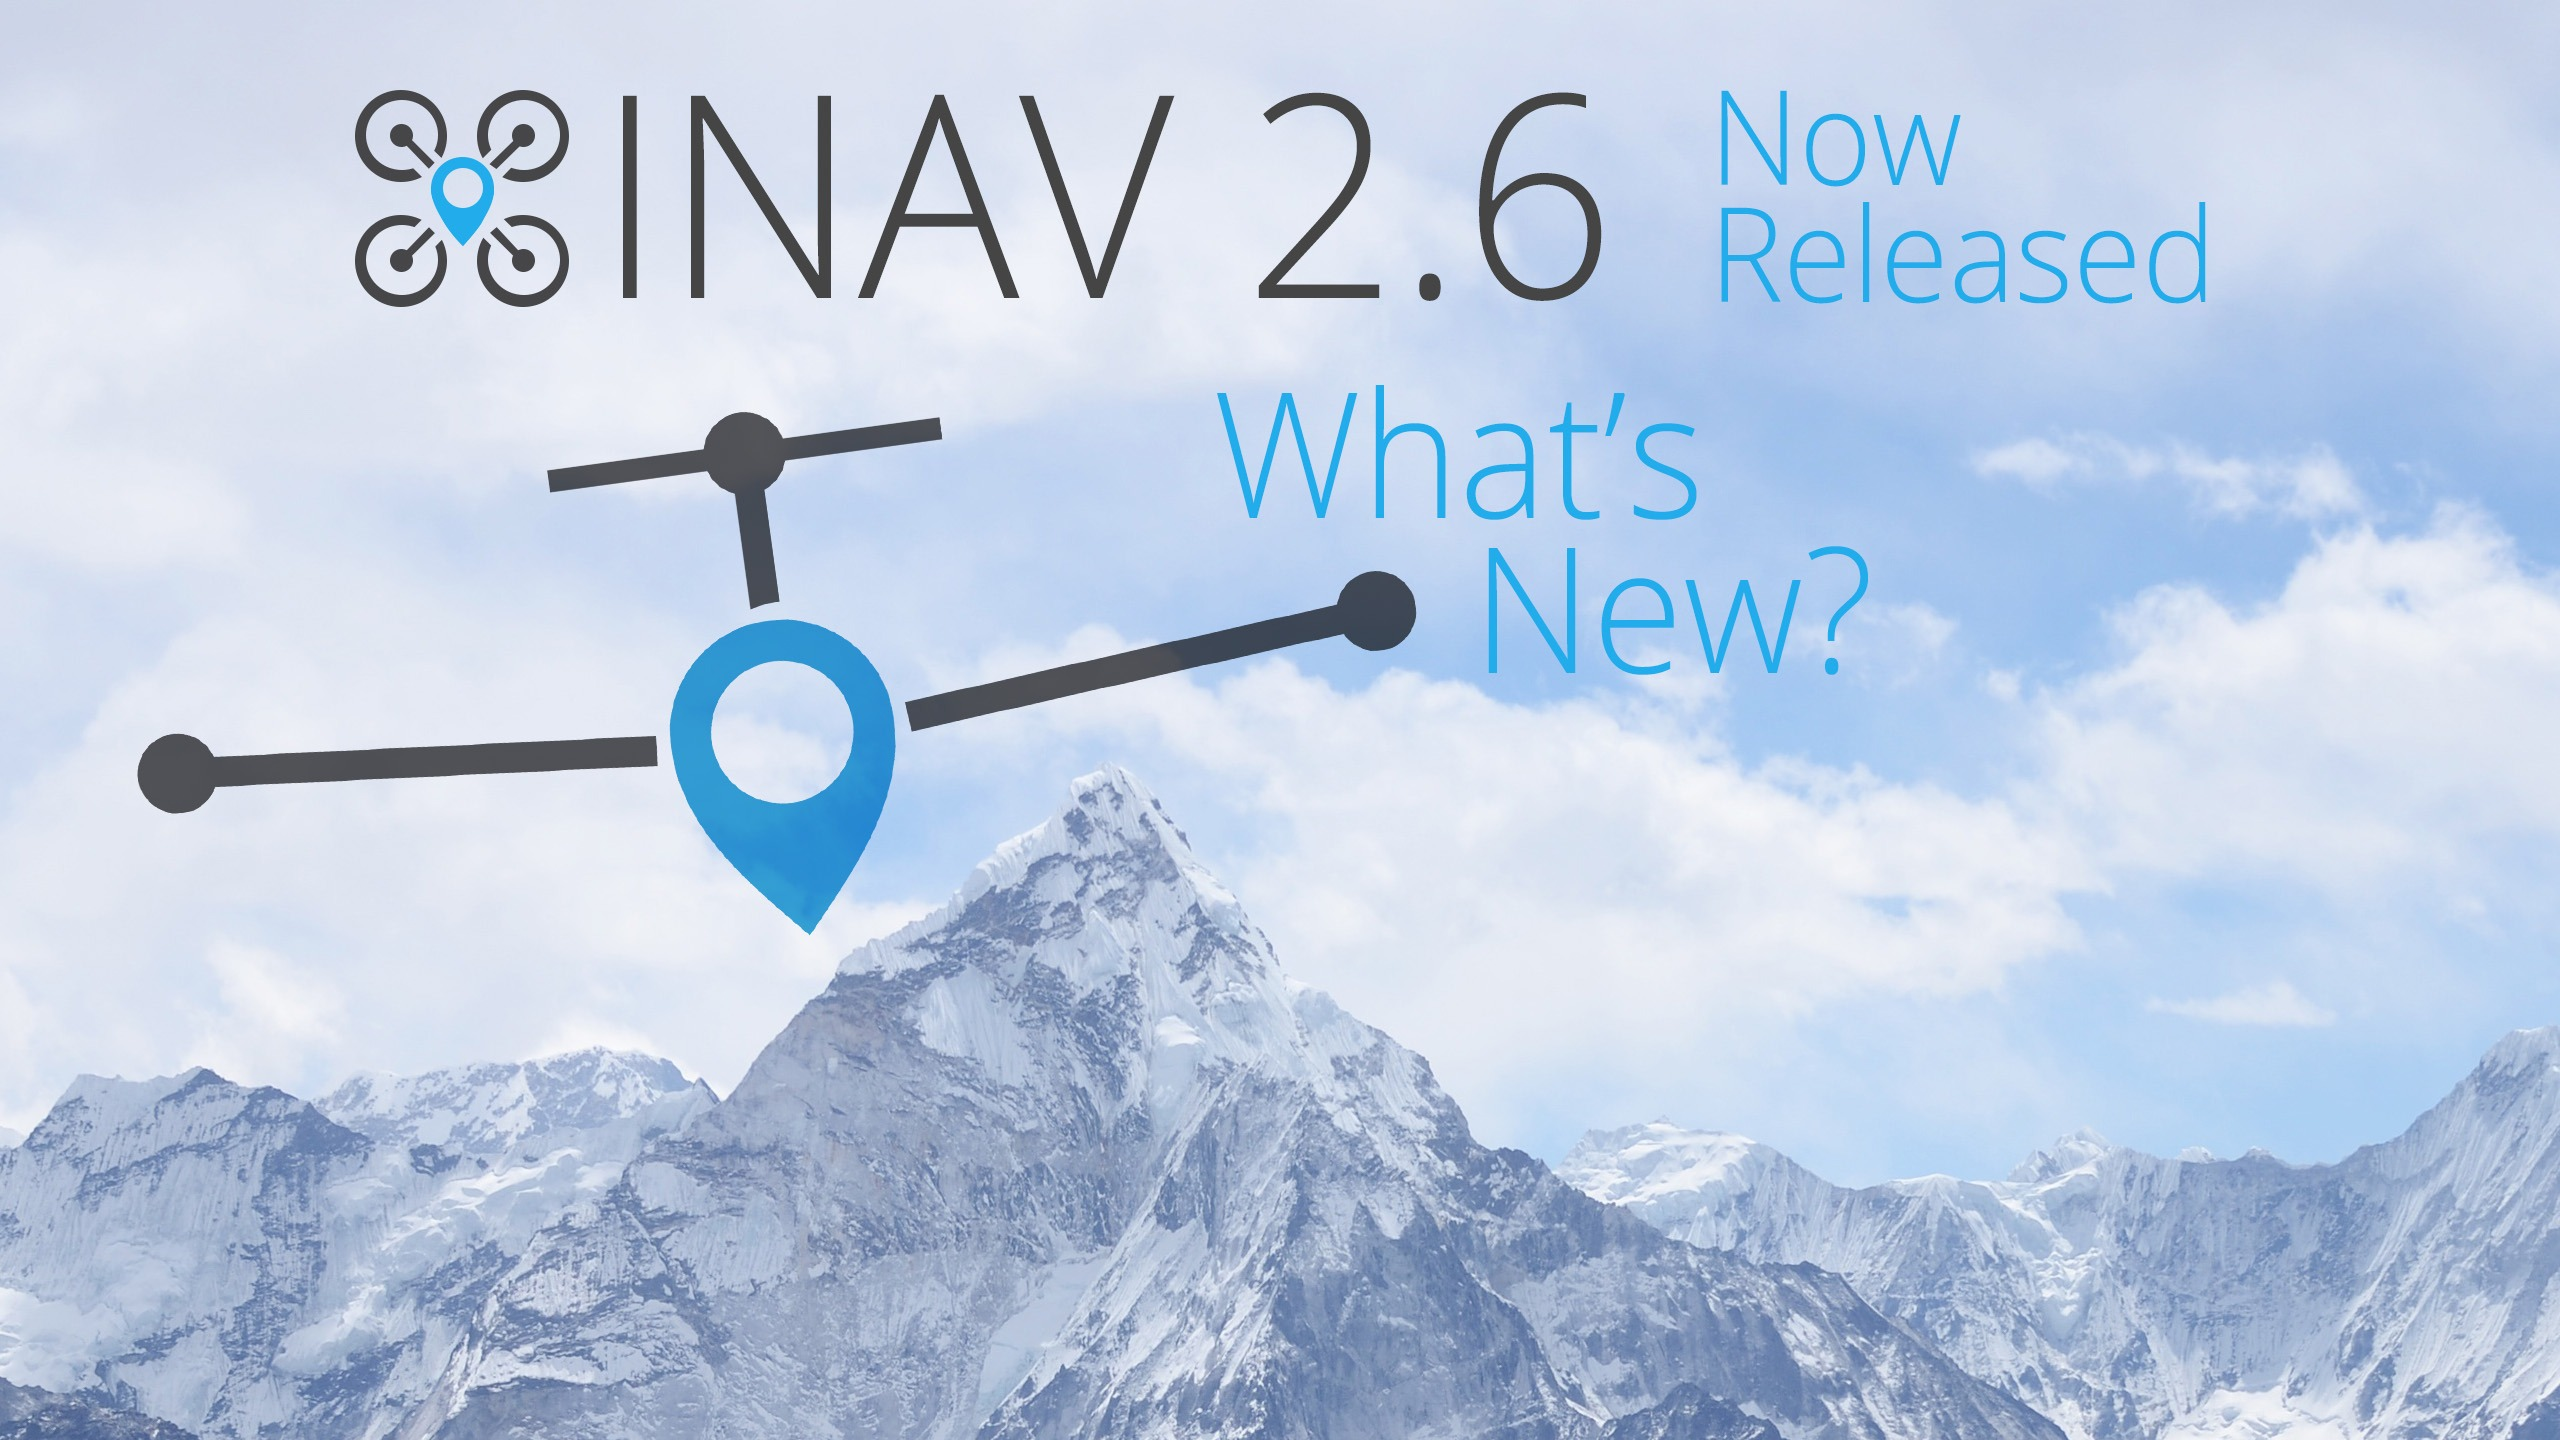 iNav 2.6 release, what's new?